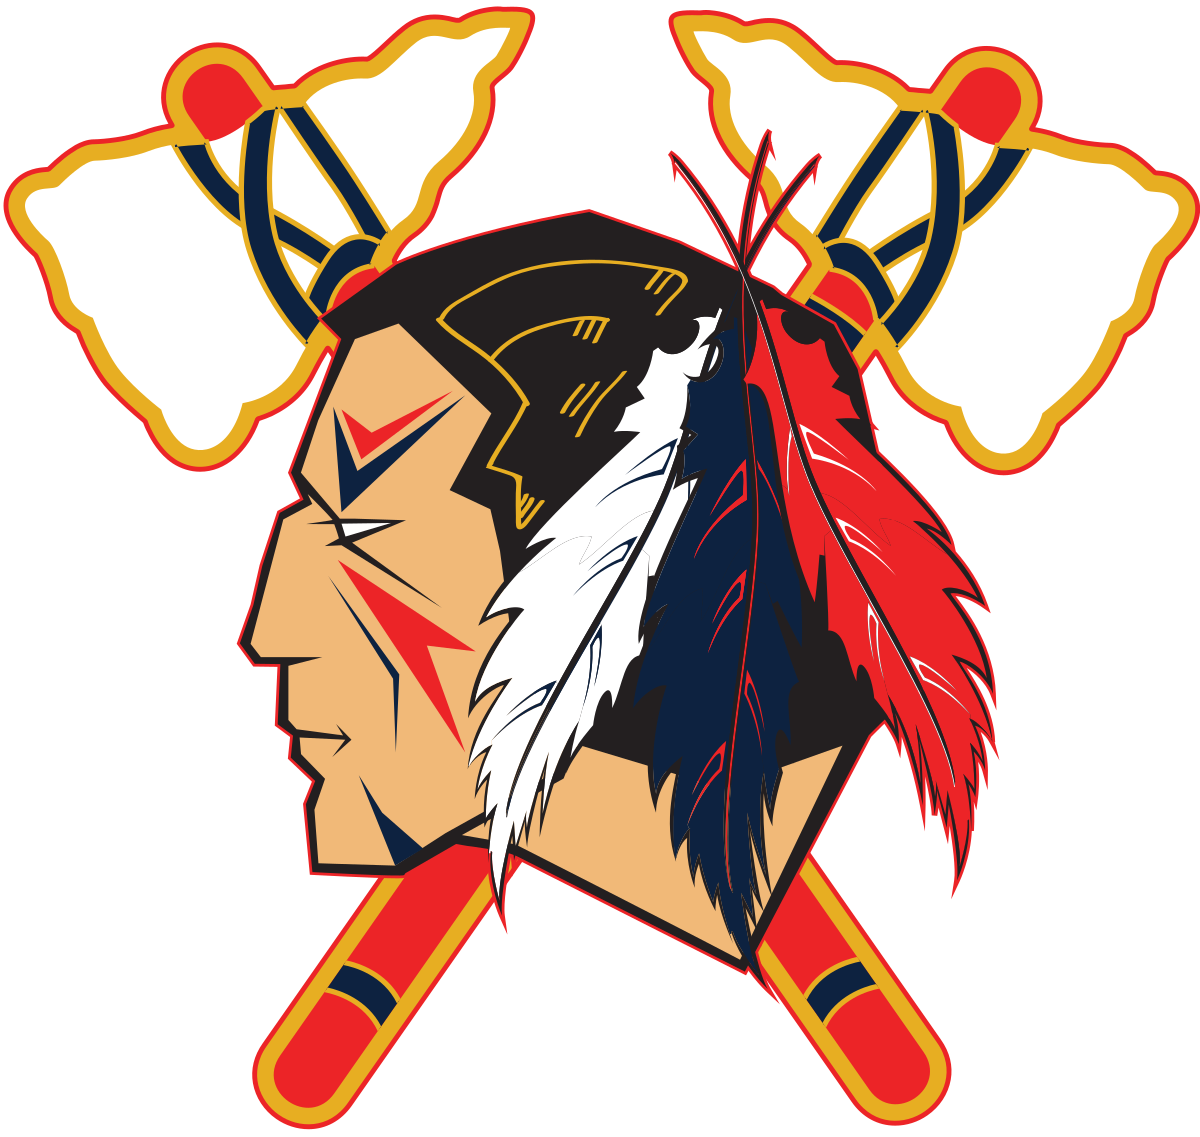 Indian football clipart svg download Johnstown Tomahawks - Wikipedia svg download